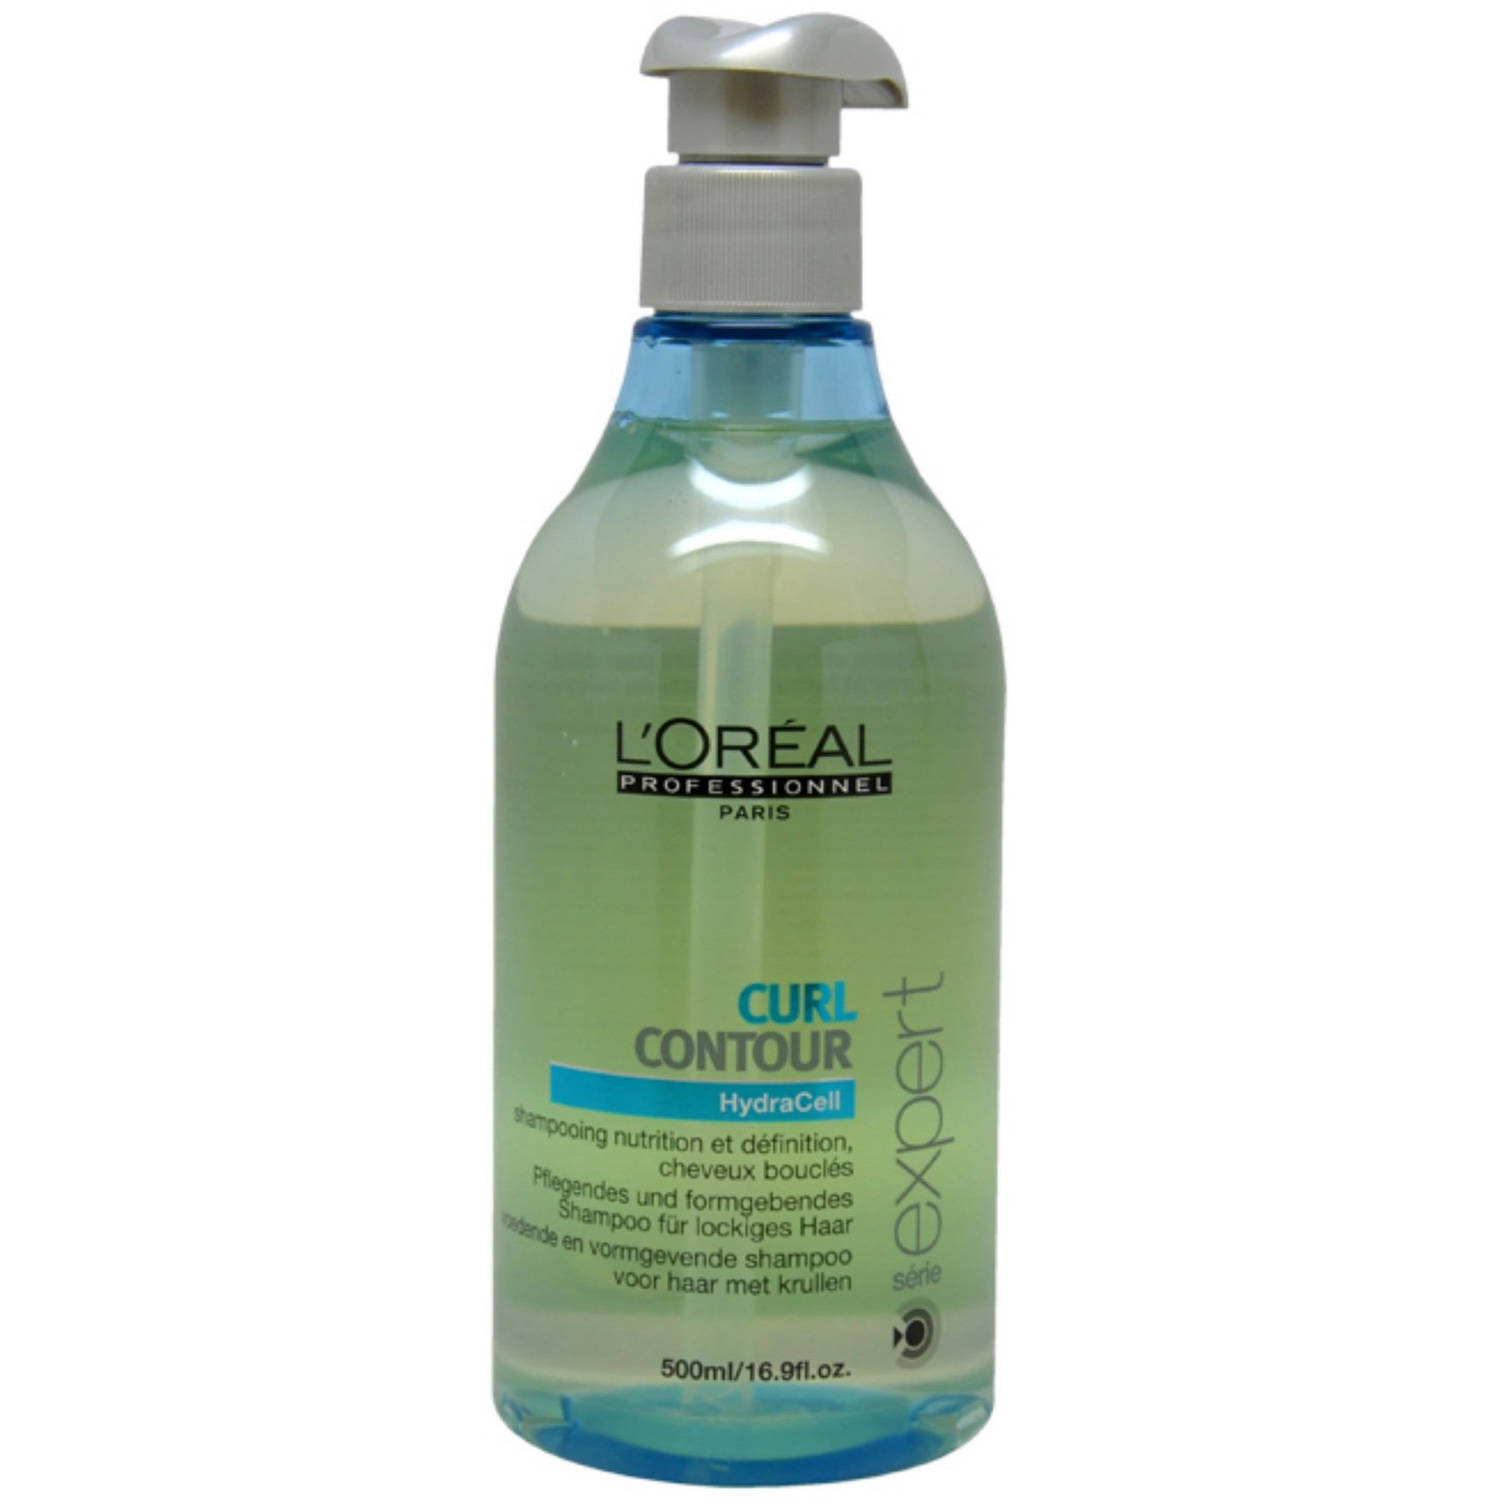 Serie Expert Curl Contour Shampoo by L'Oreal Professional for Unisex, 16.9 oz